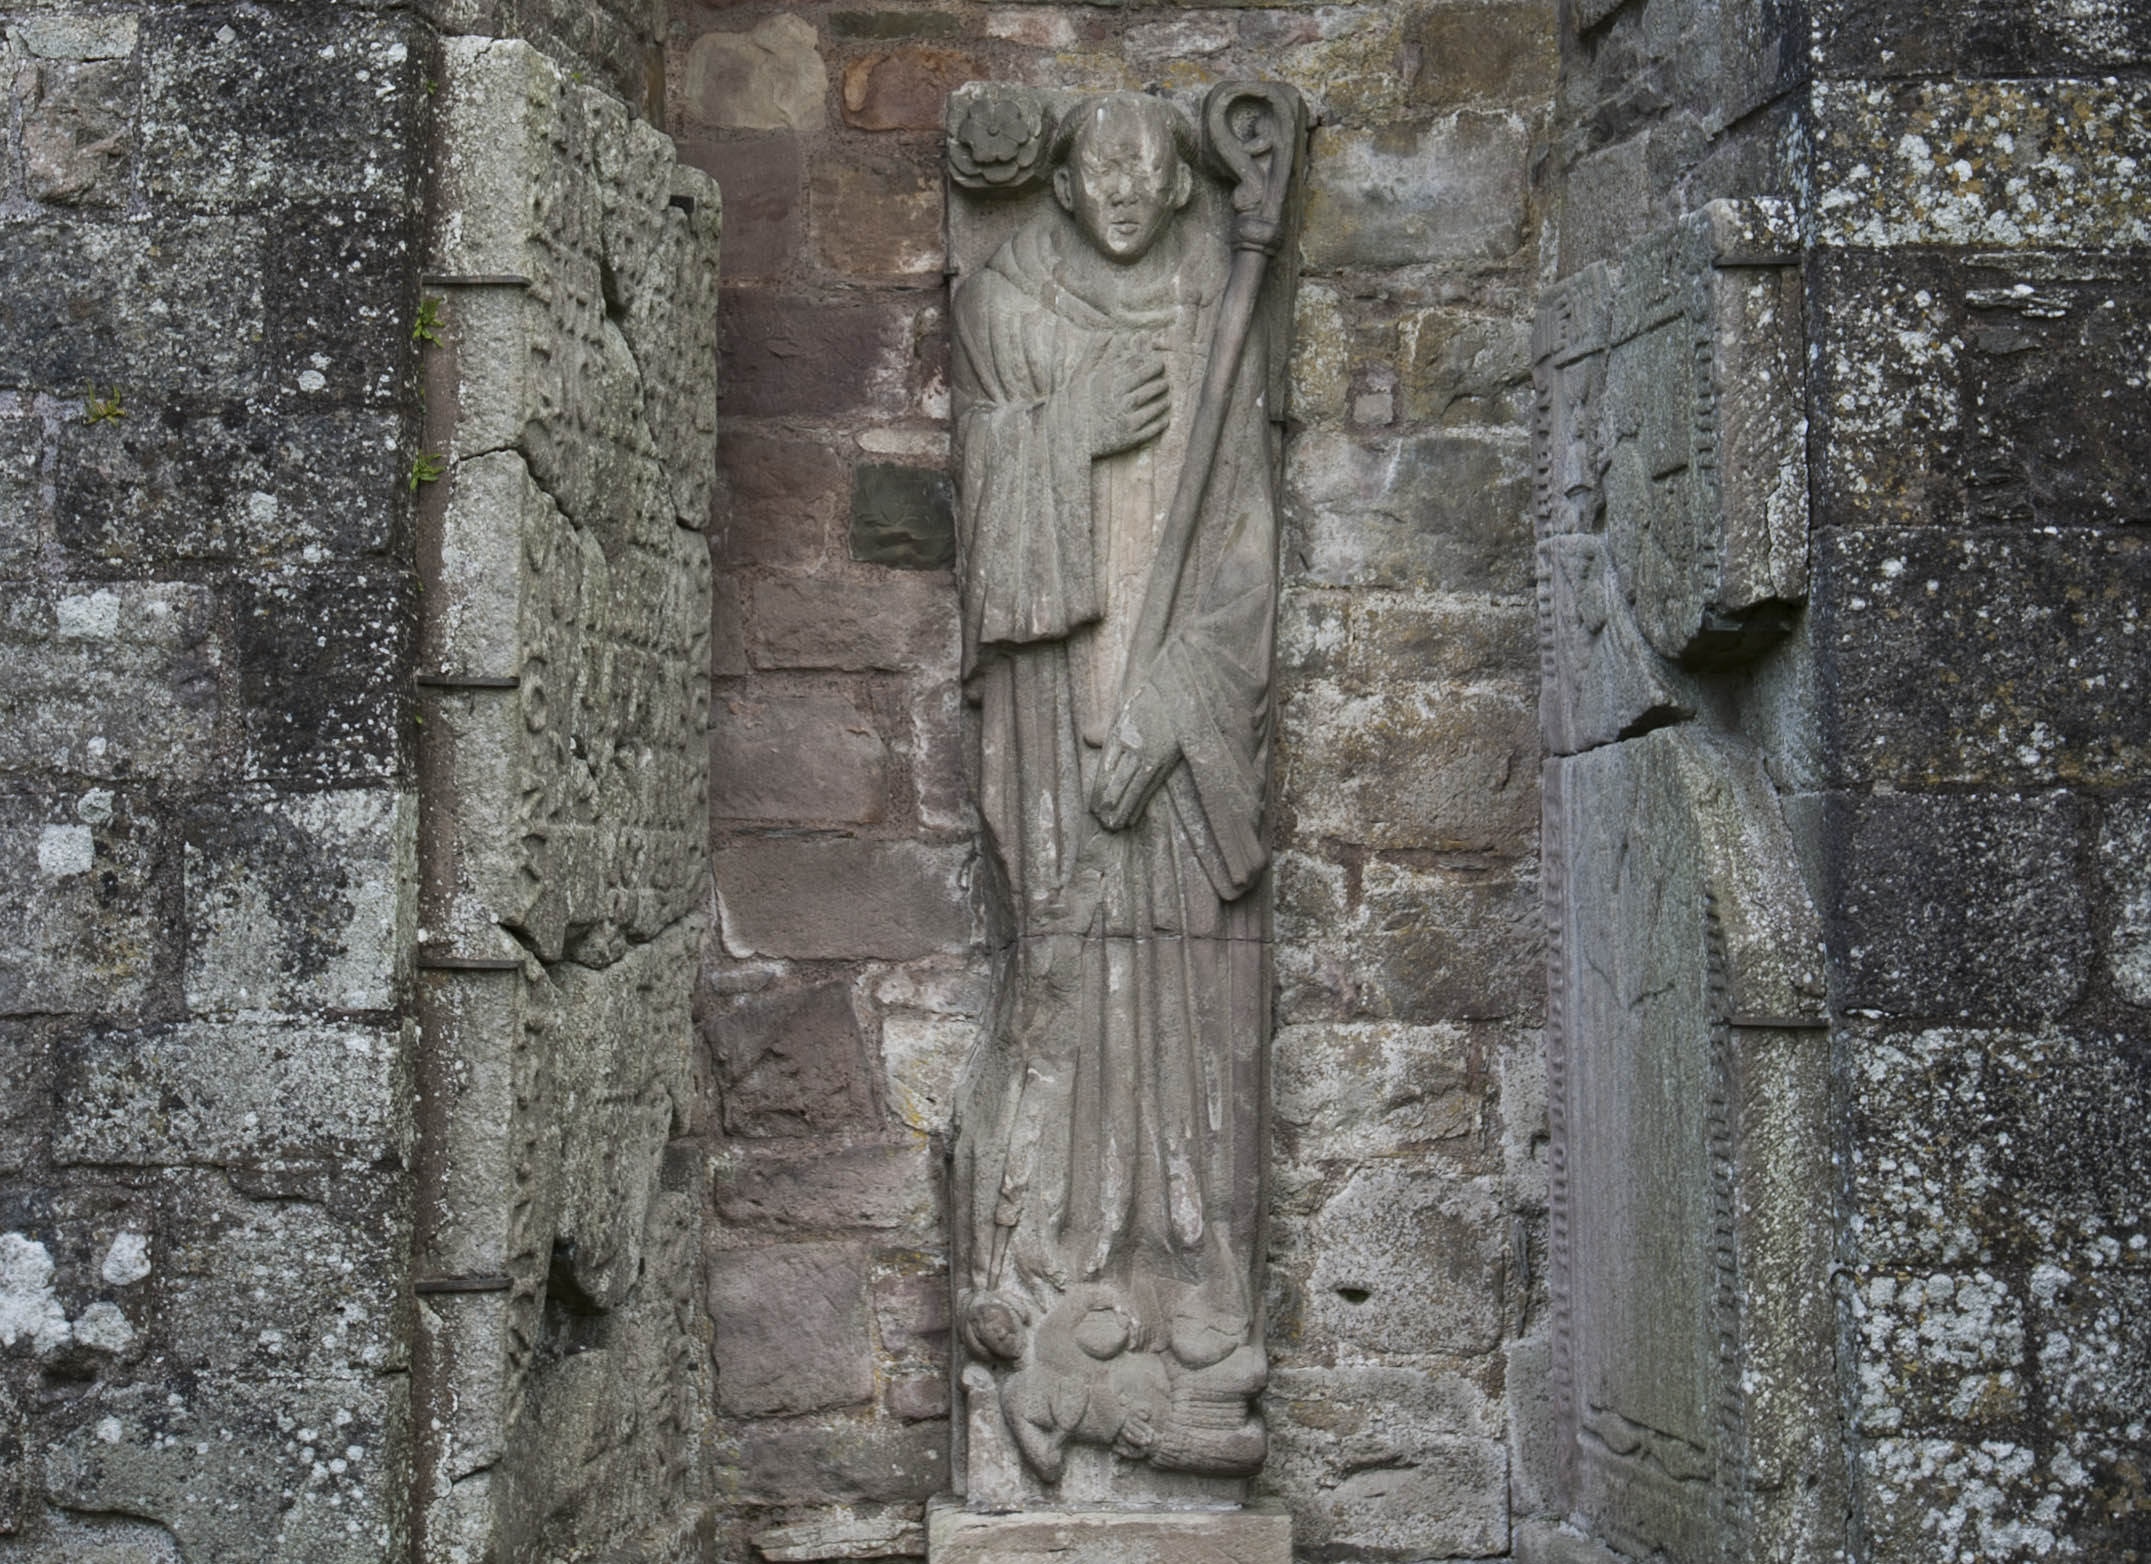 Effigy of an unknown abbot of Dundrennan. The dagger at his haert, along wih the partly disembowelled figure at his geet, has been taken to suggest that this abbot was murdered.